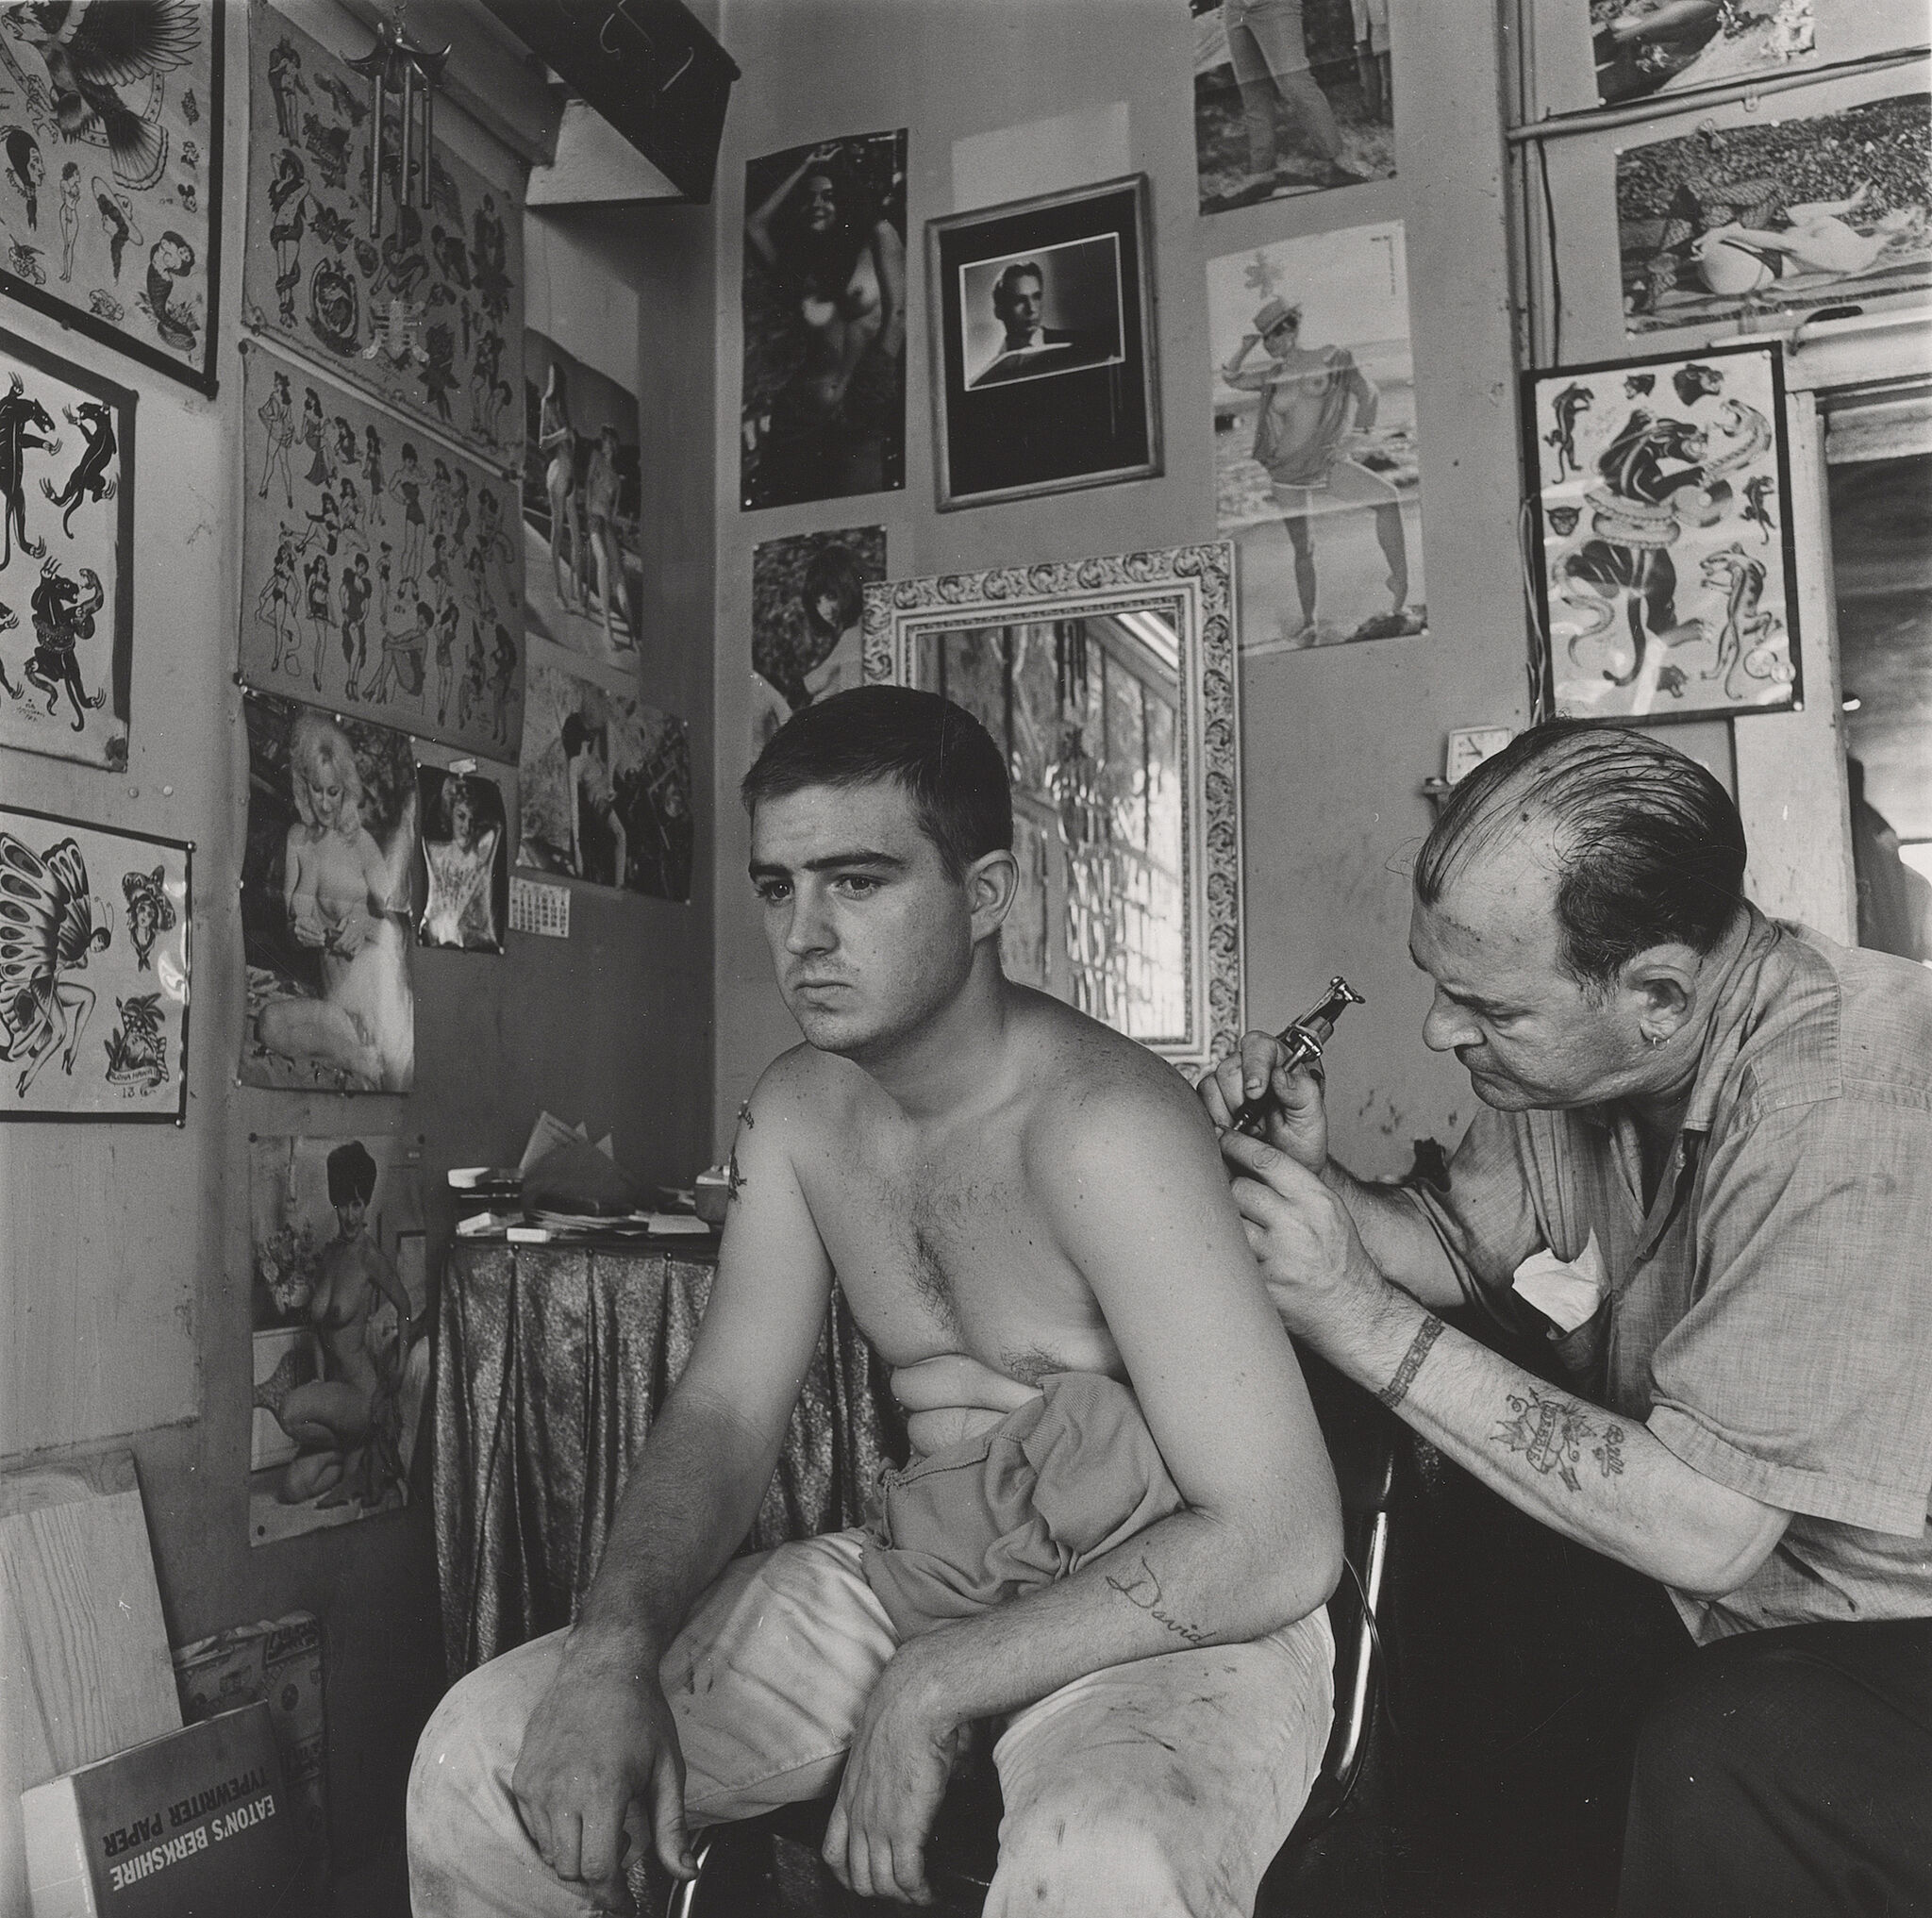 A work by artist Danny Lyon. A man is tattooed in a black and white setting